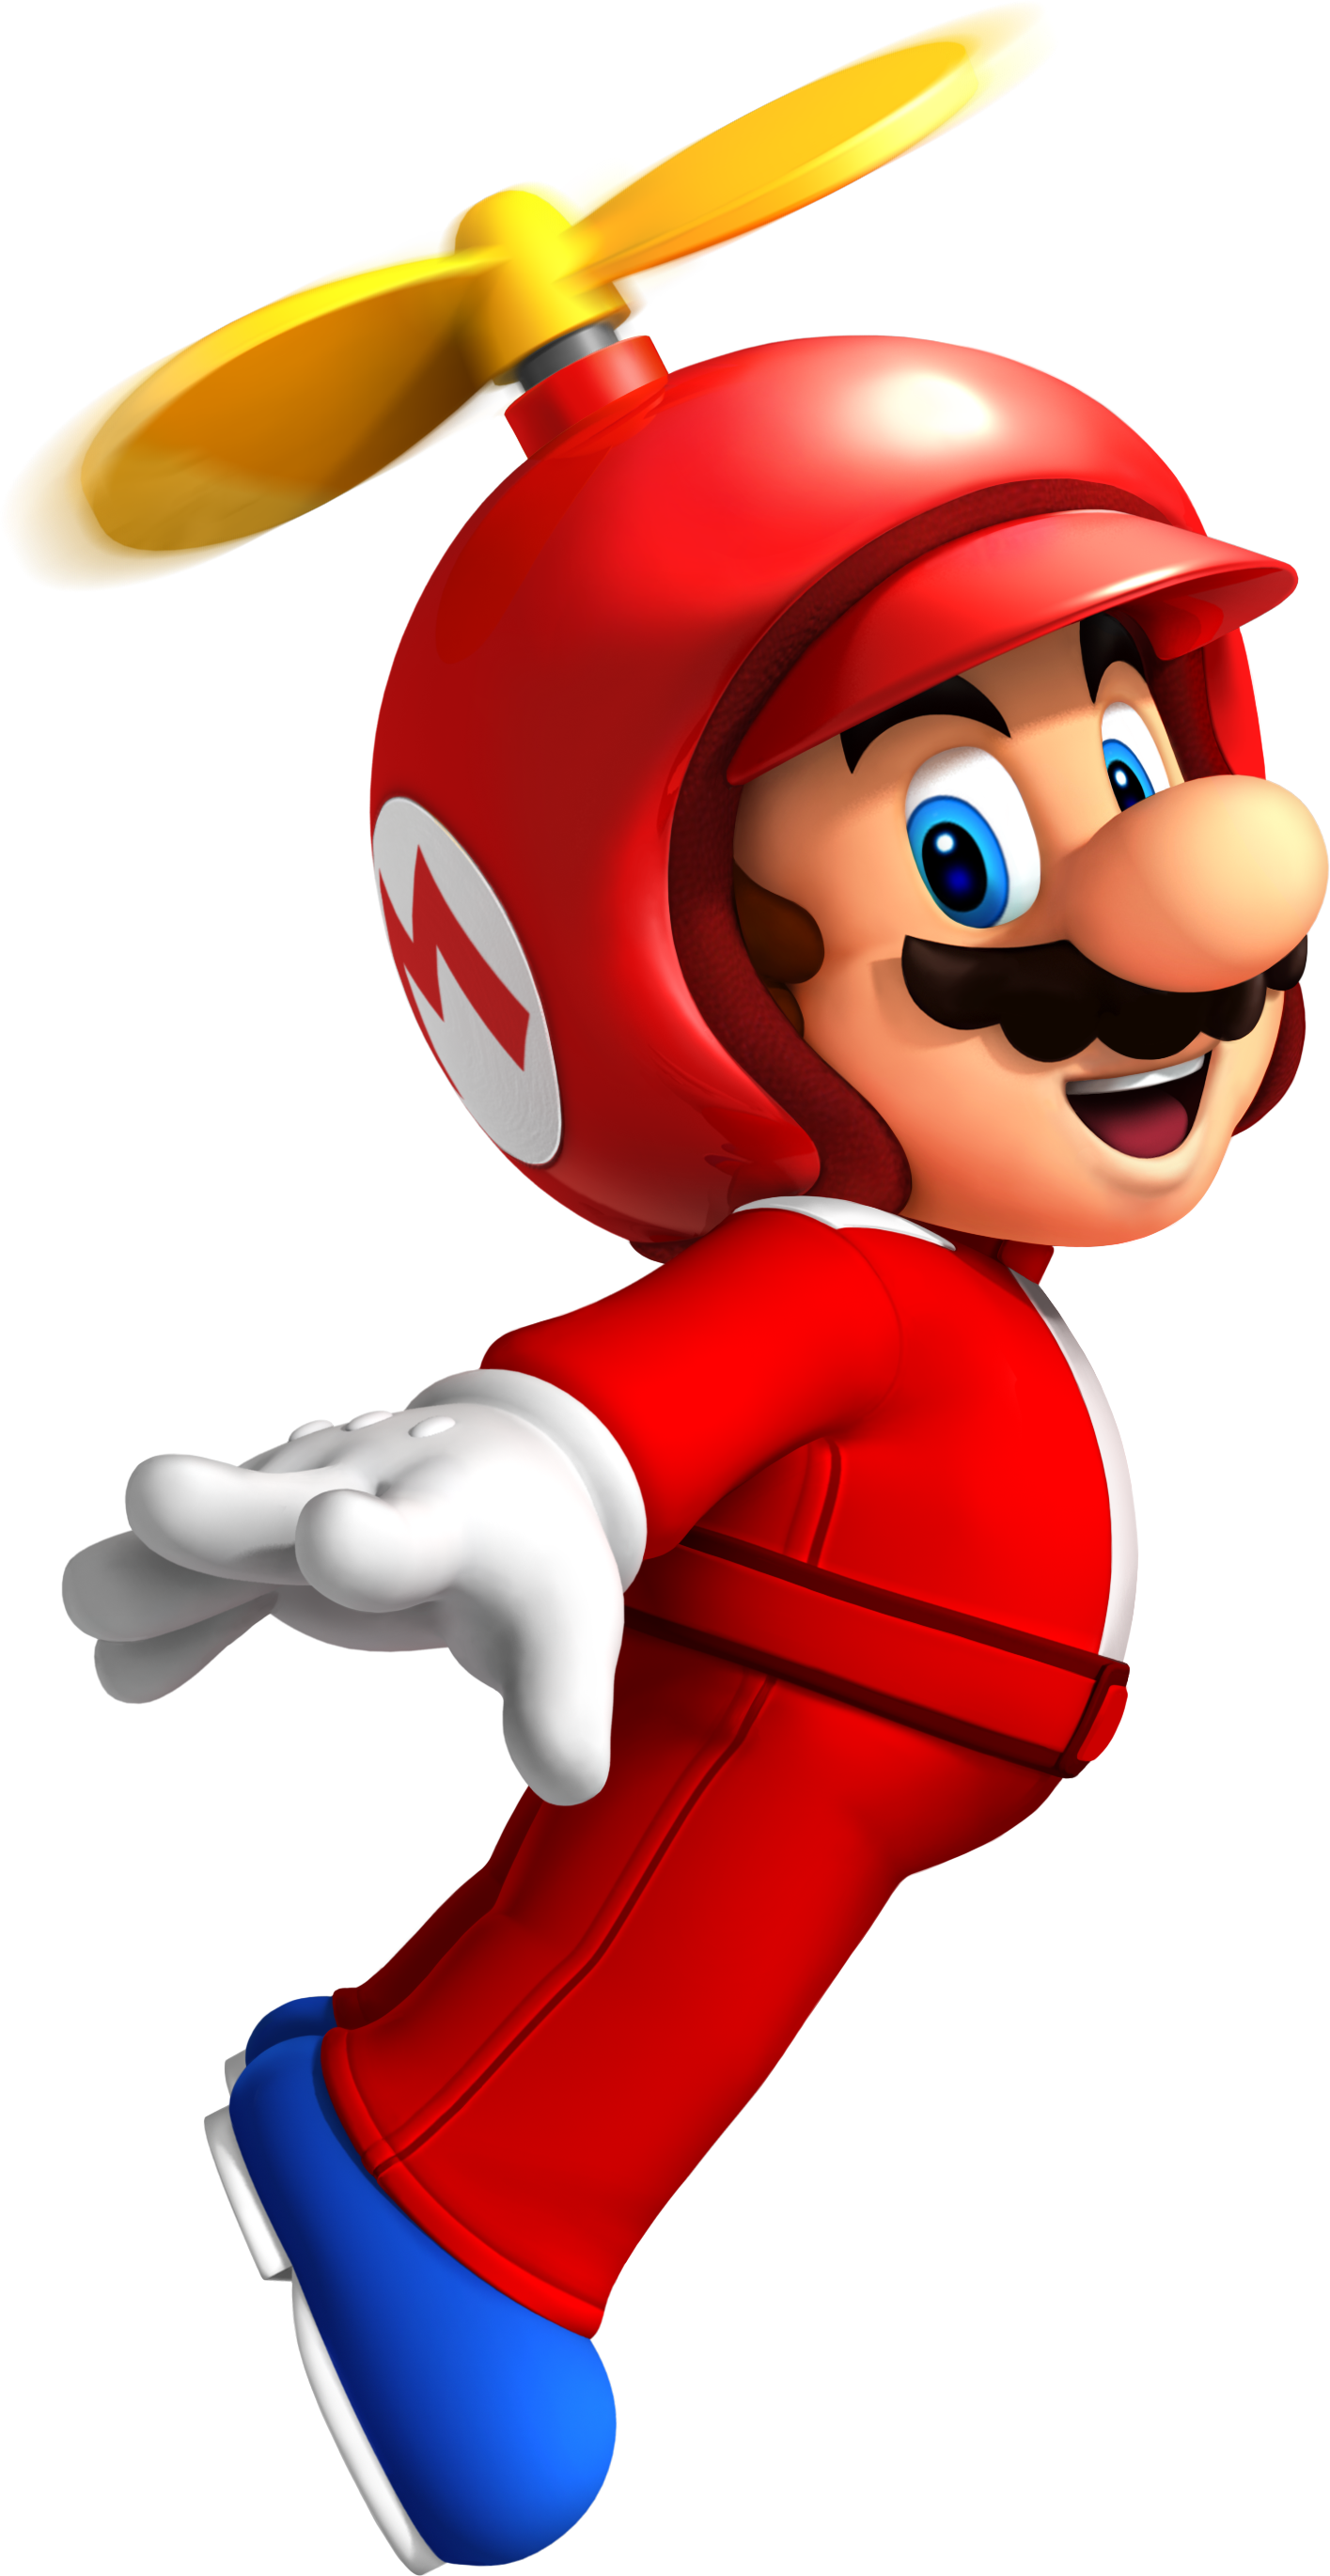 Red clothes with Mario helicopter hat Png